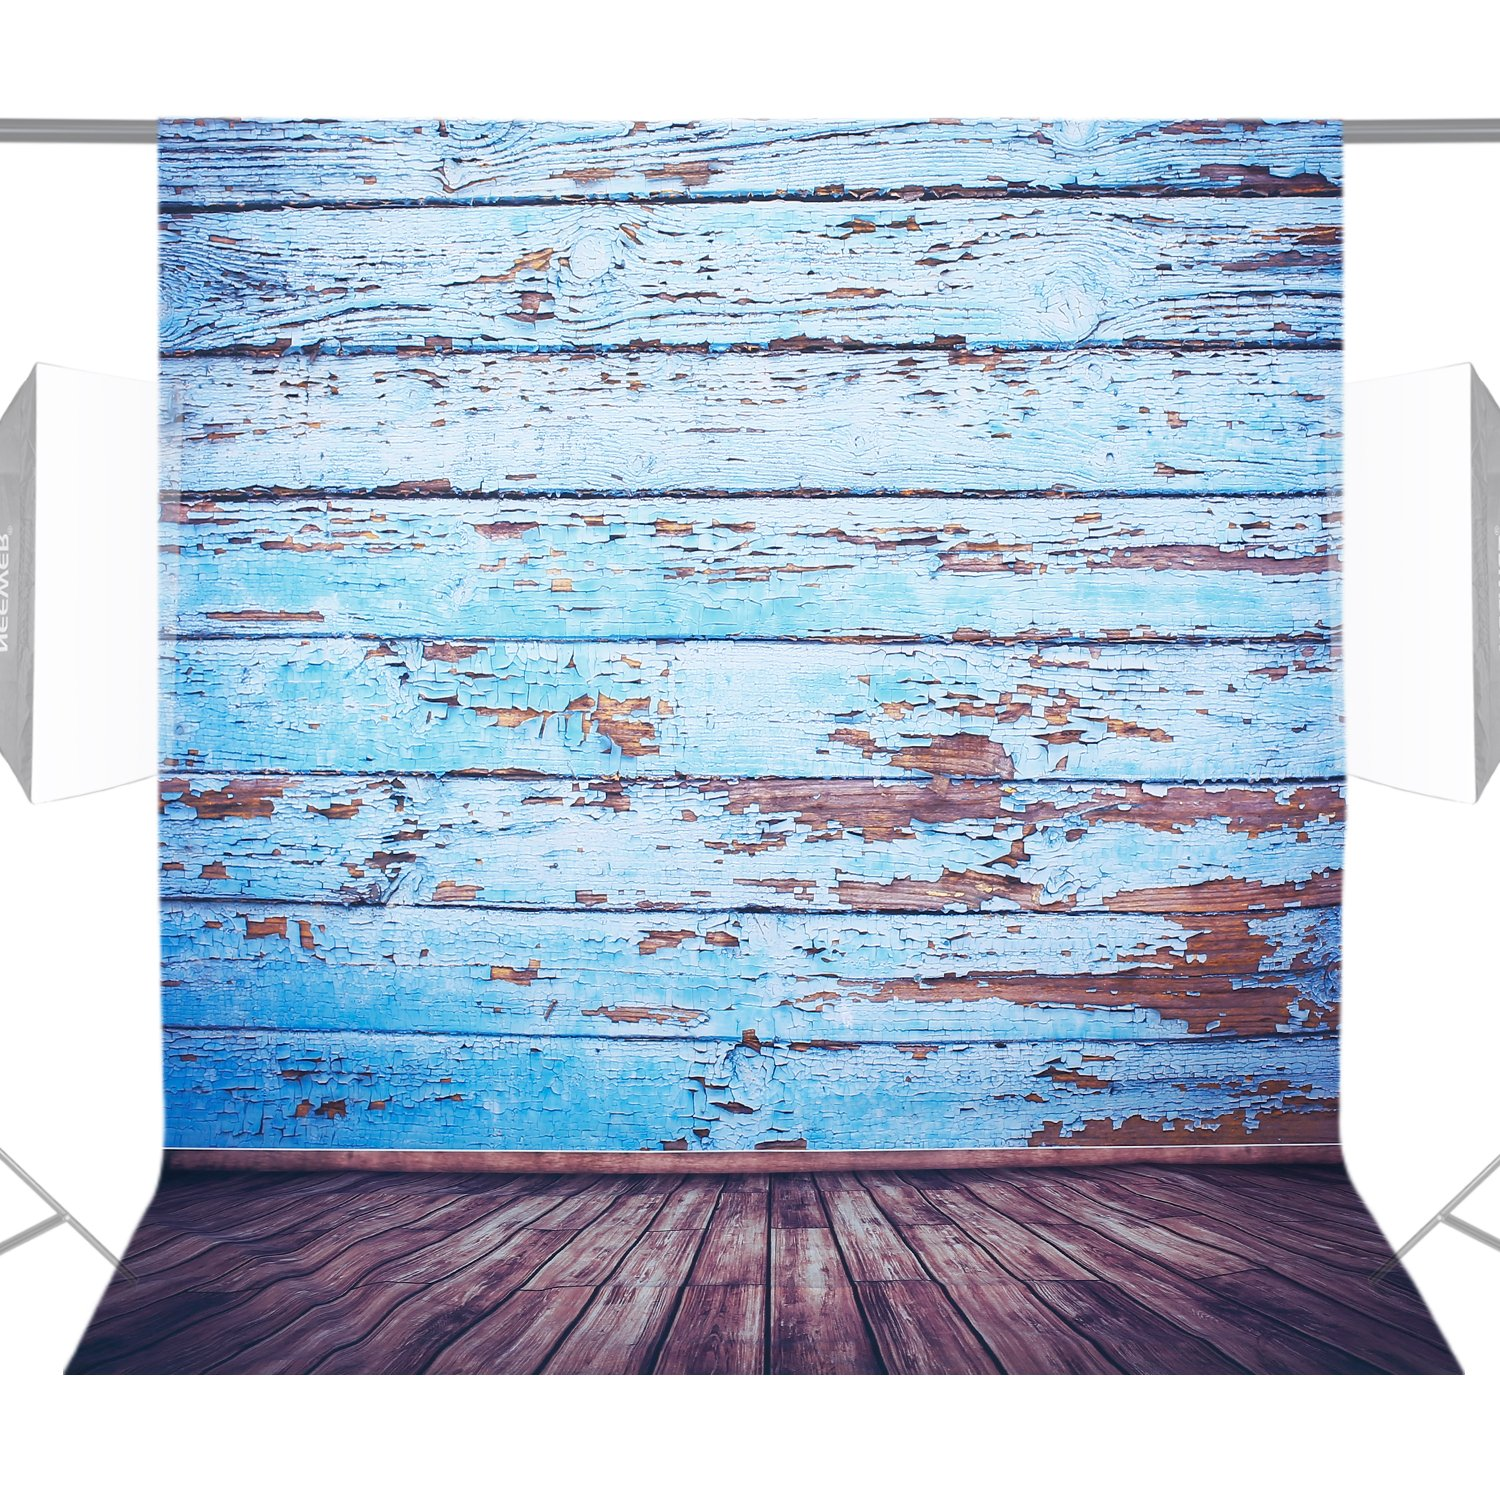 Neewer 5x7ft/150x210cm 100% Polyester Wooden Floor Backdrop.